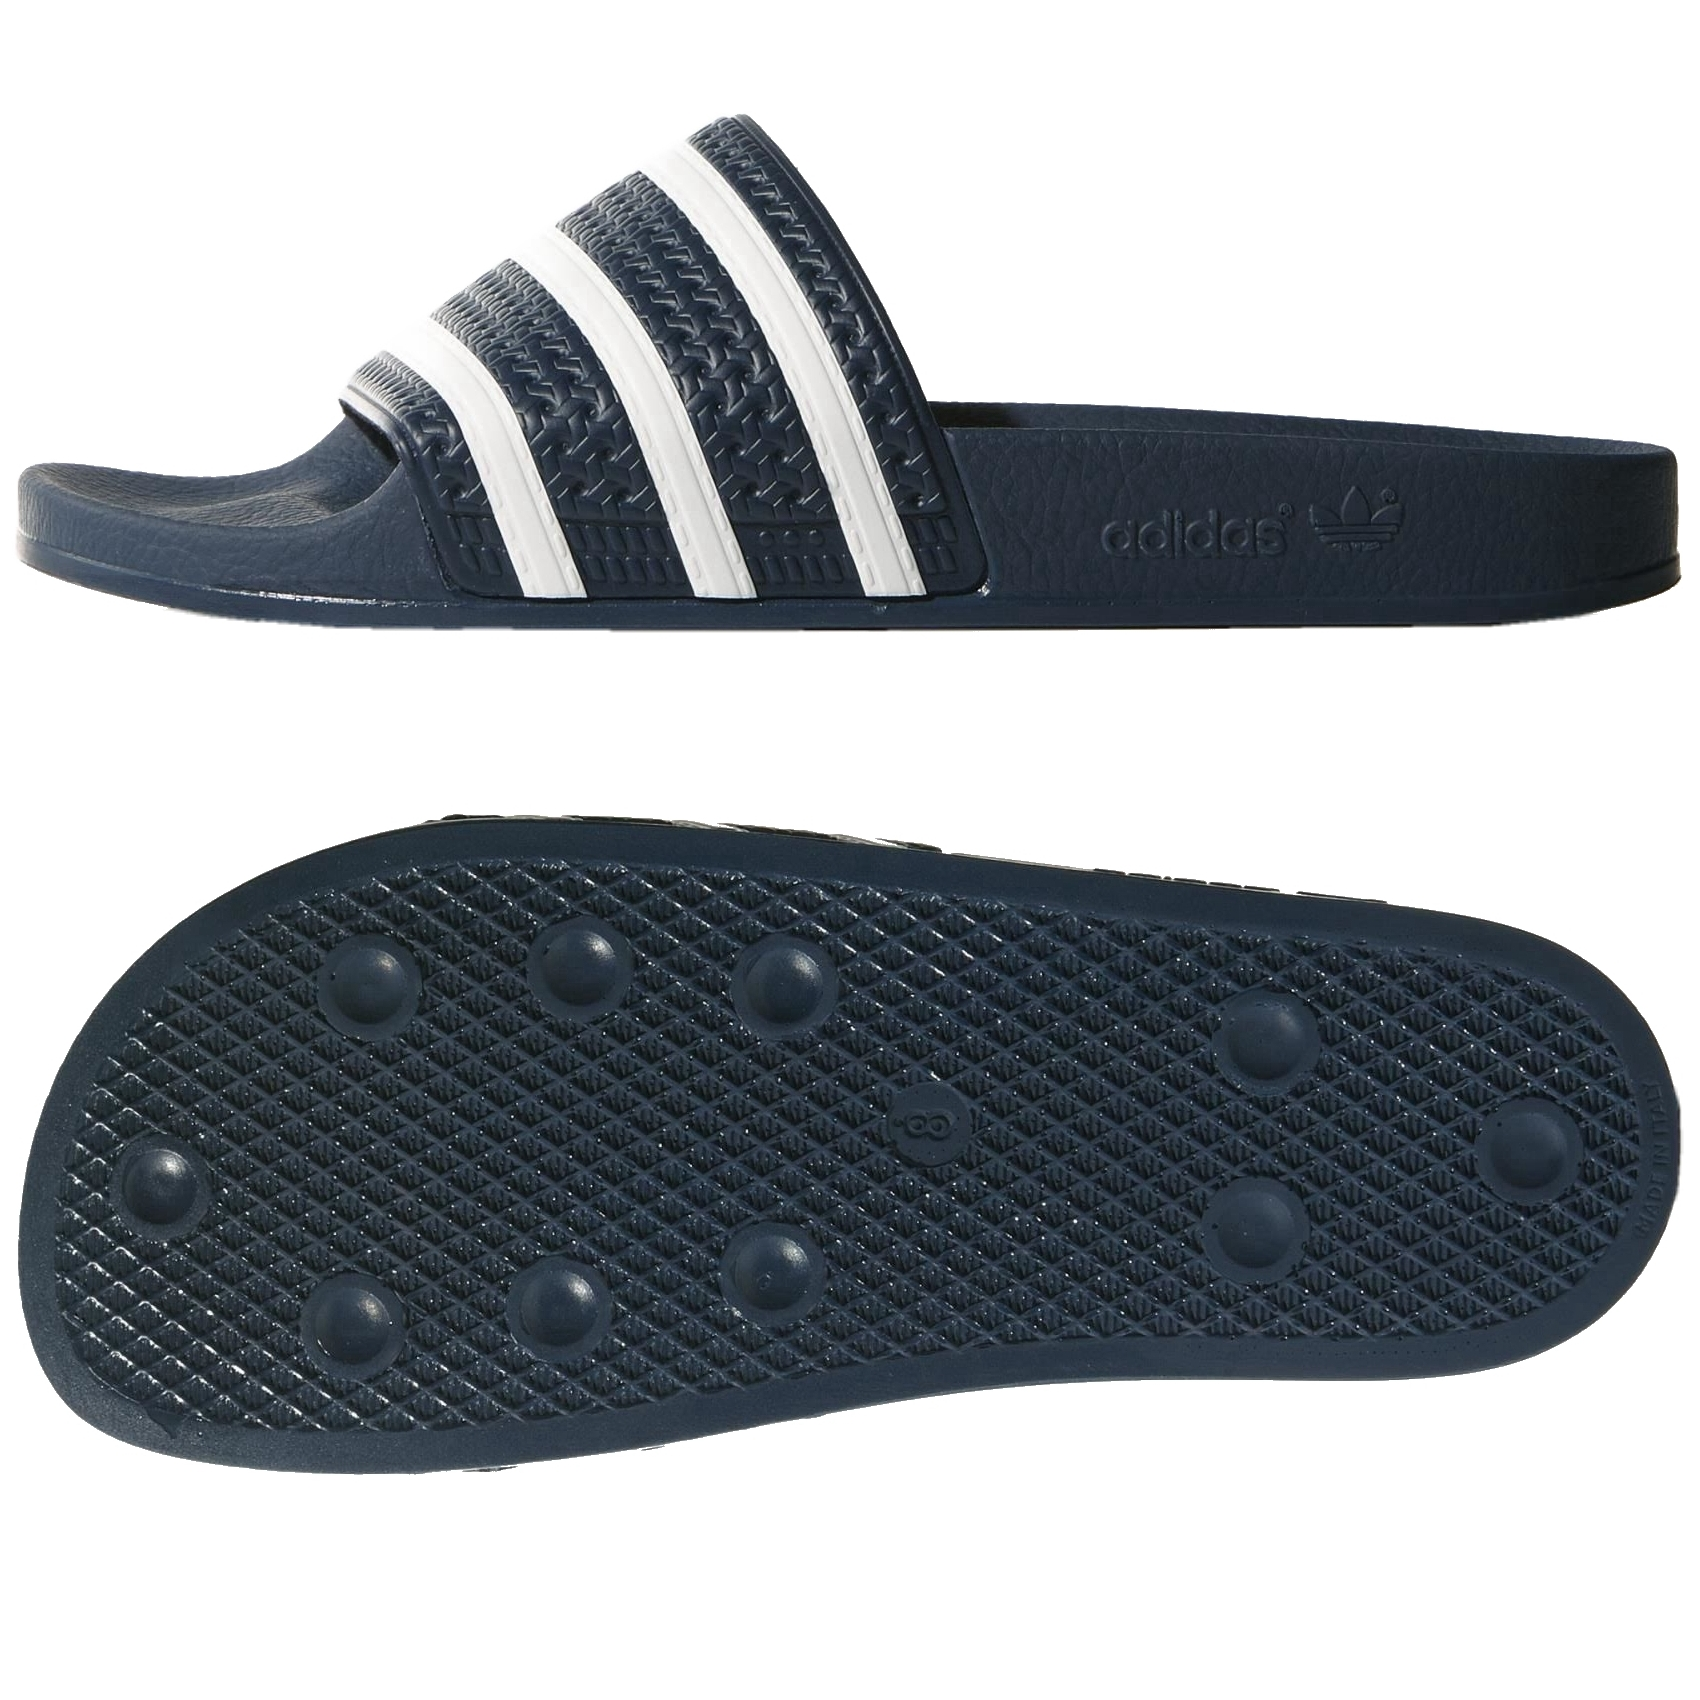 adidas originals adilette chaussures hommes femmes sandales flops tongs ebay. Black Bedroom Furniture Sets. Home Design Ideas